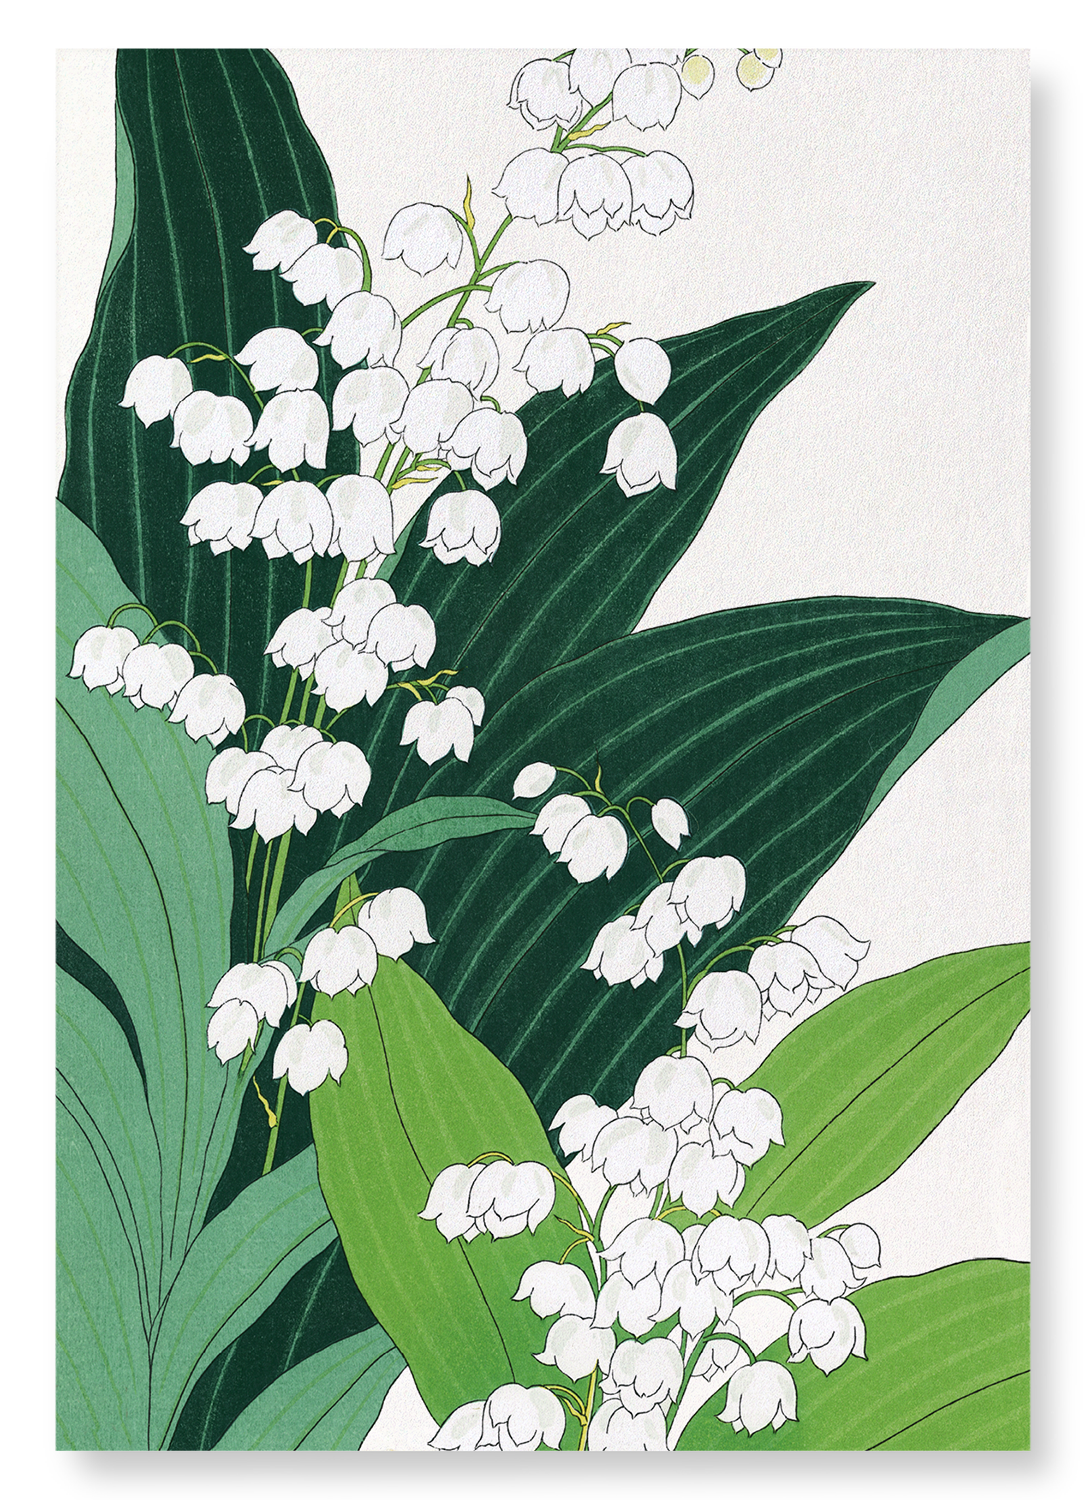 Lily of the valley: 2xPrints